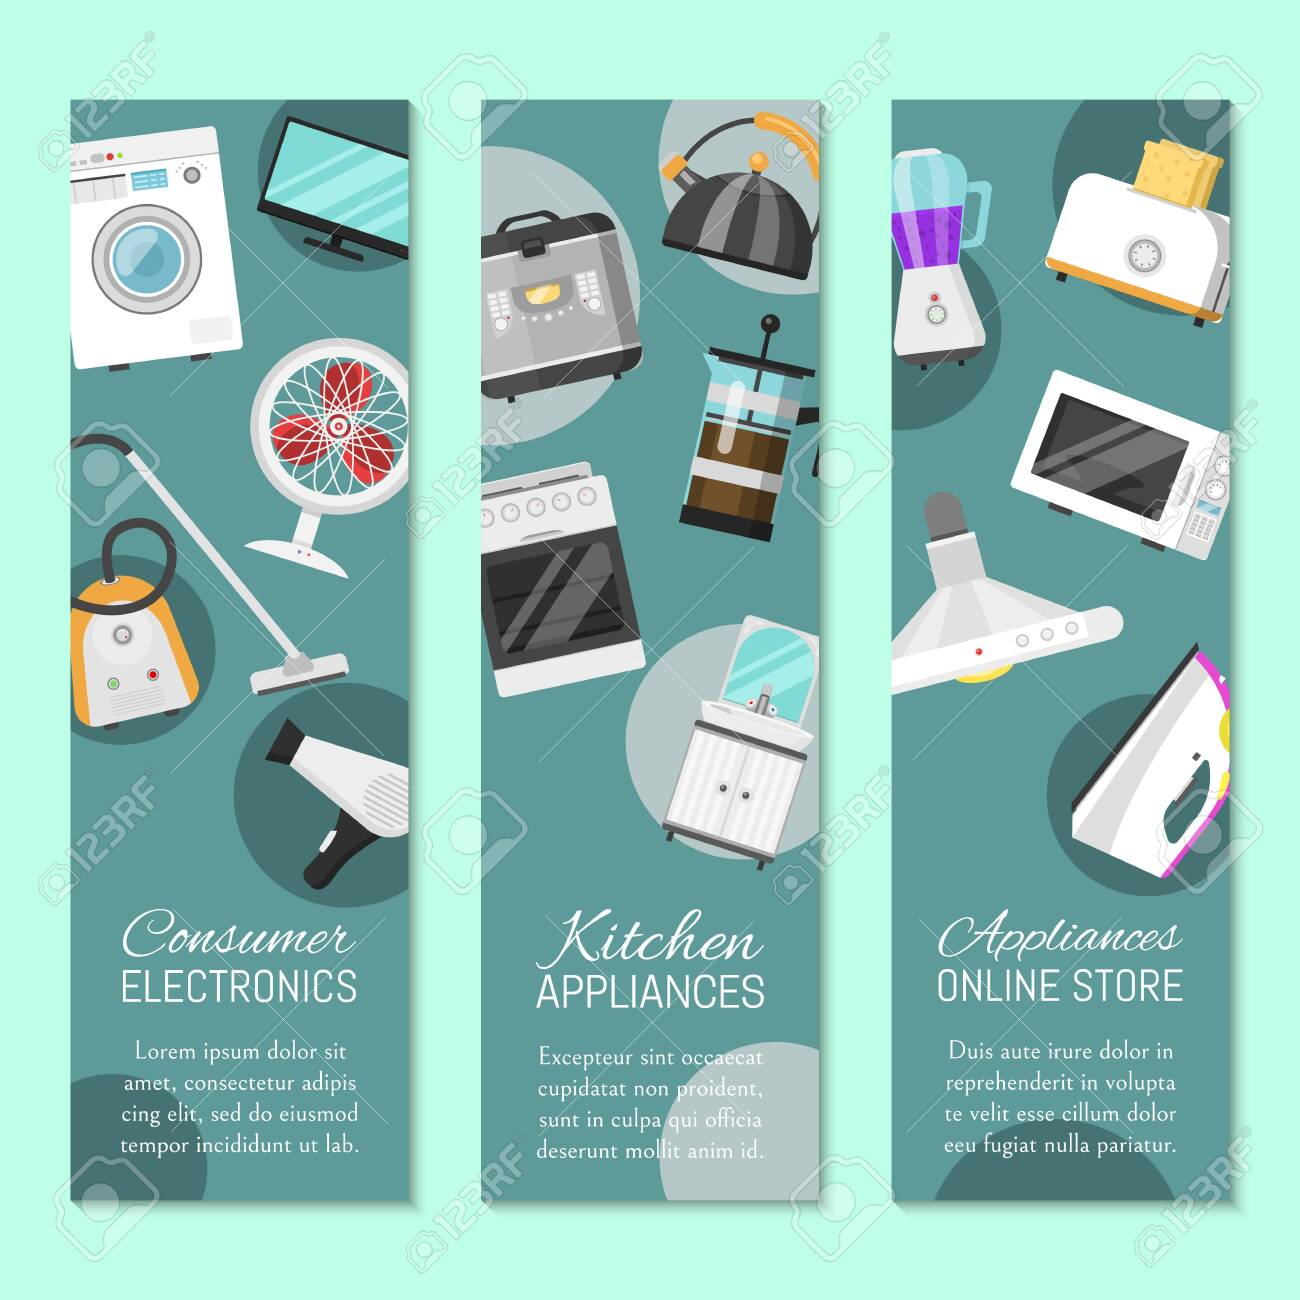 Electronic Household Appliances Set Of Banners Vector Illustration